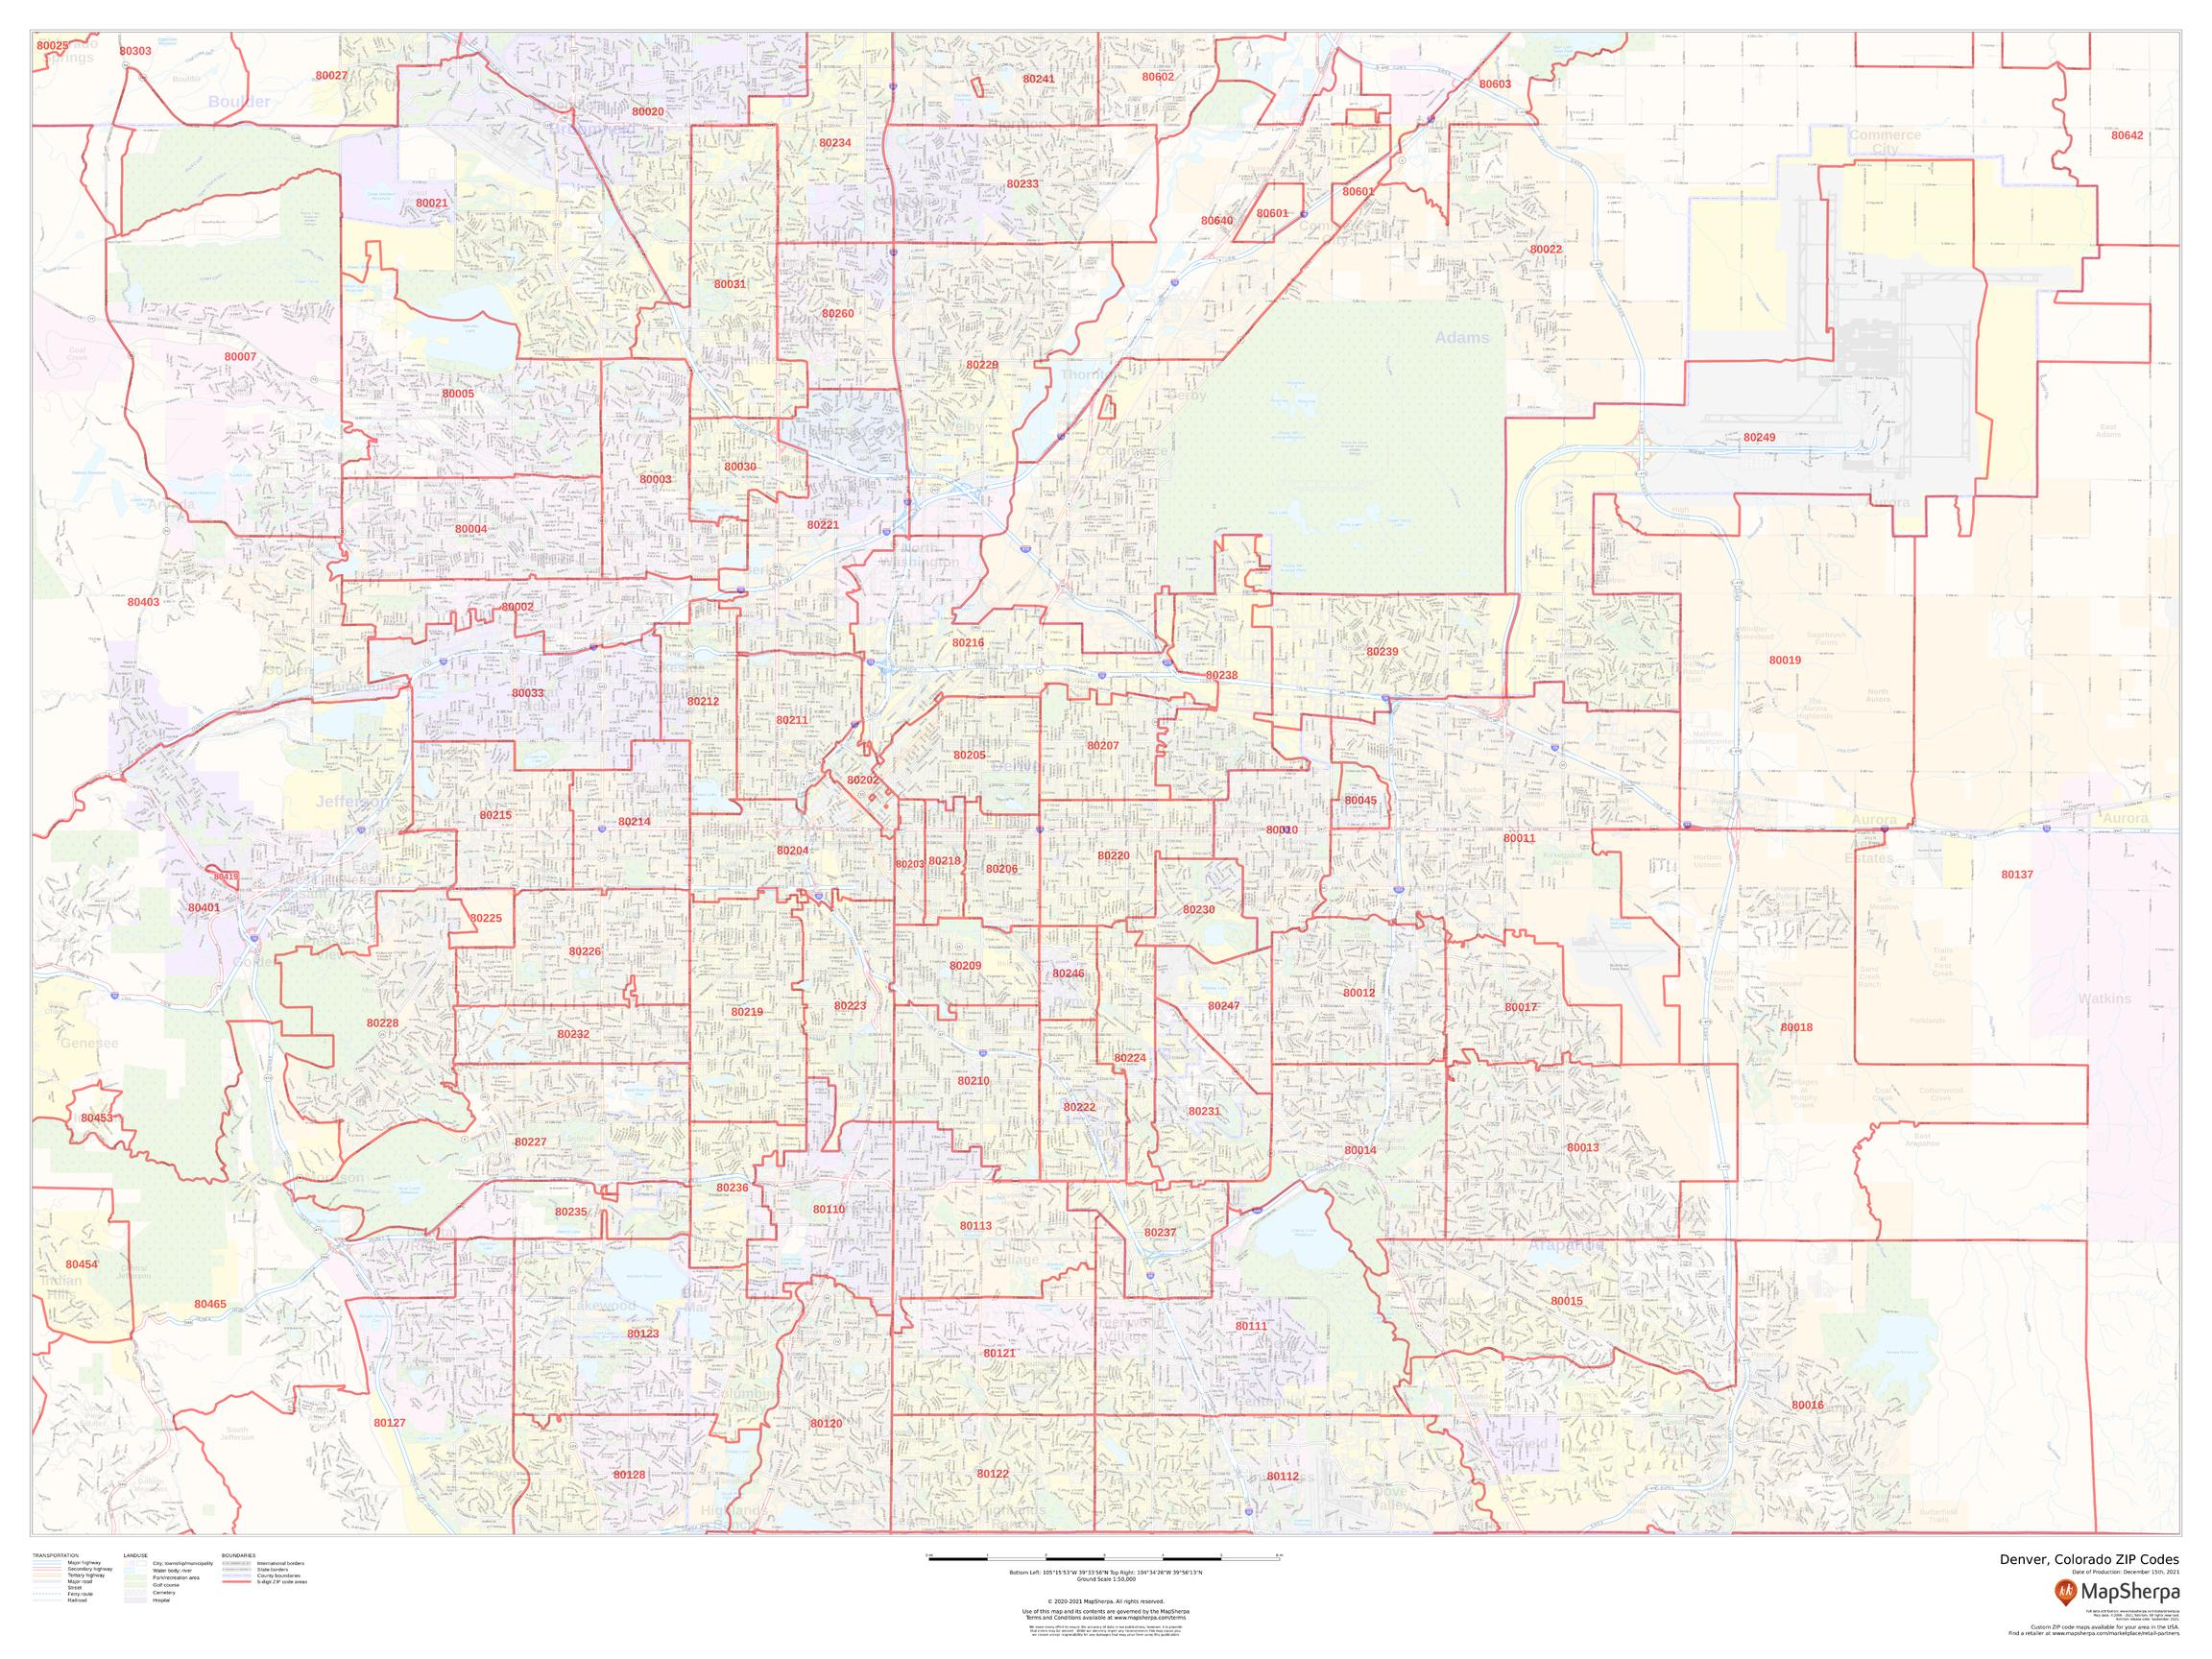 Denver, Colorado ZIP Codes